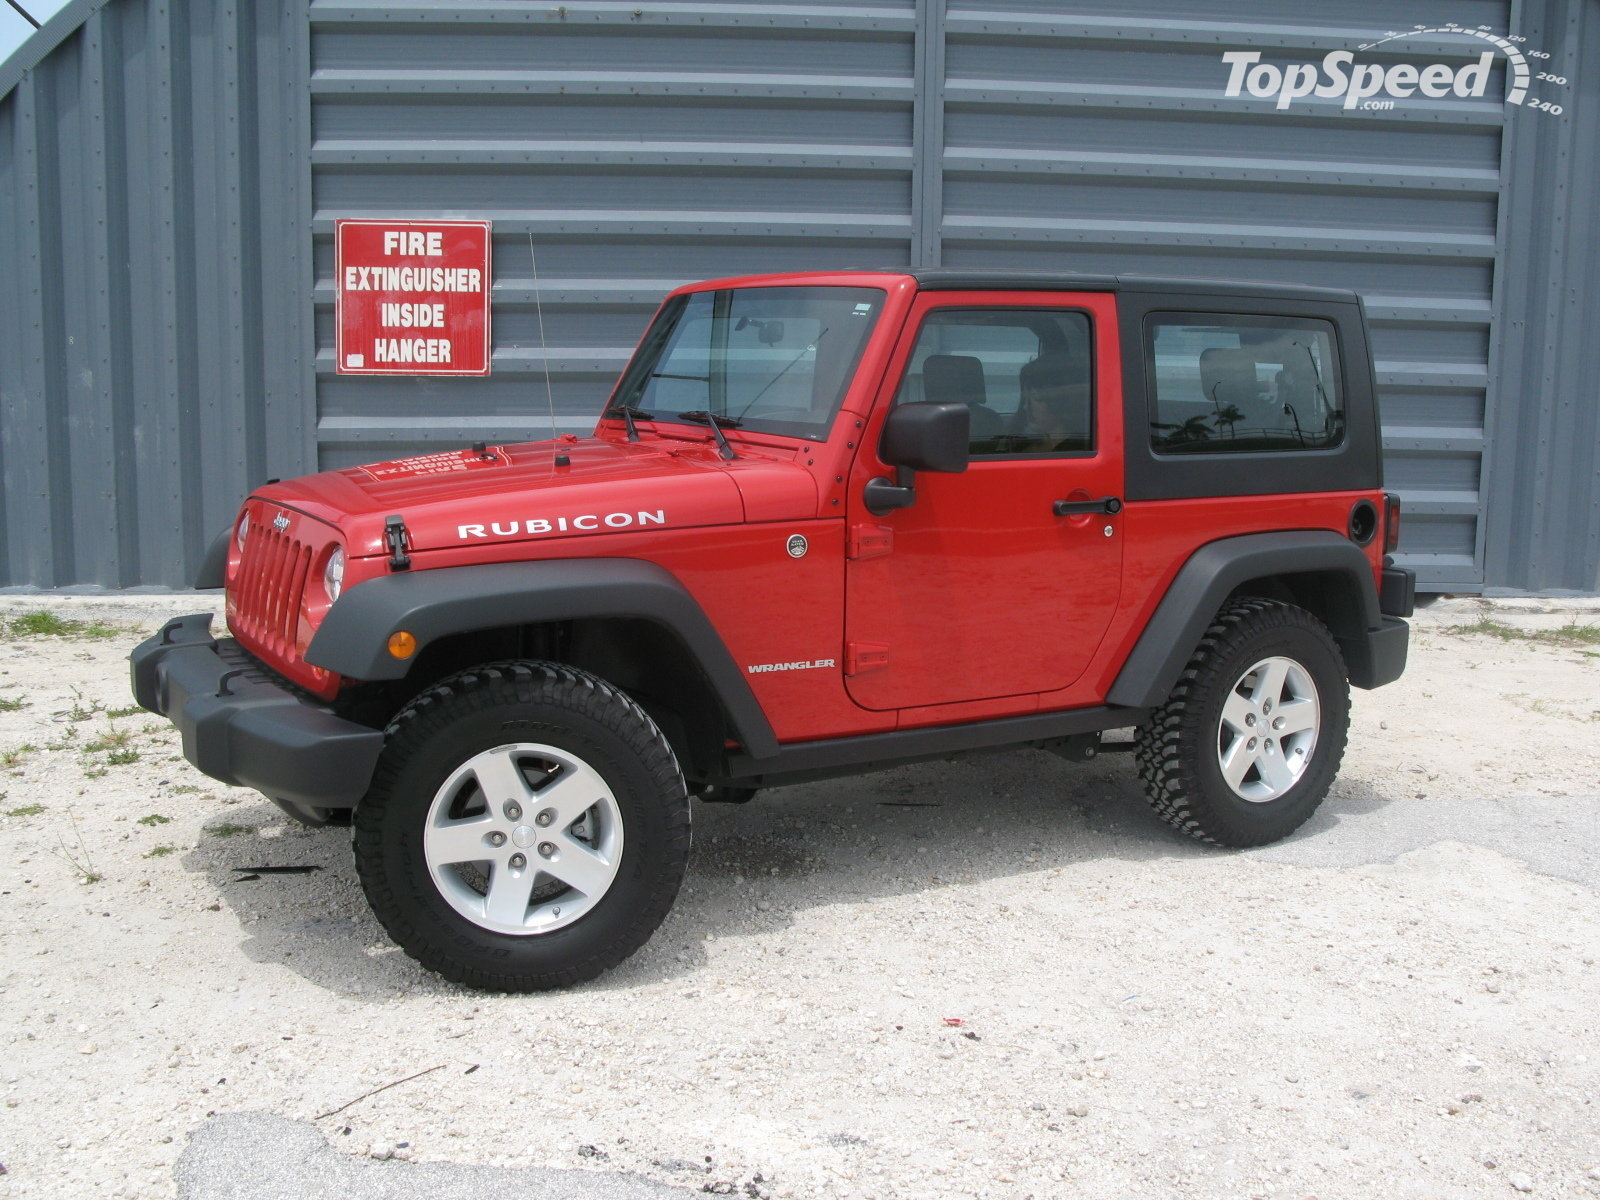 2008 jeep wrangler rubicon review - top speed